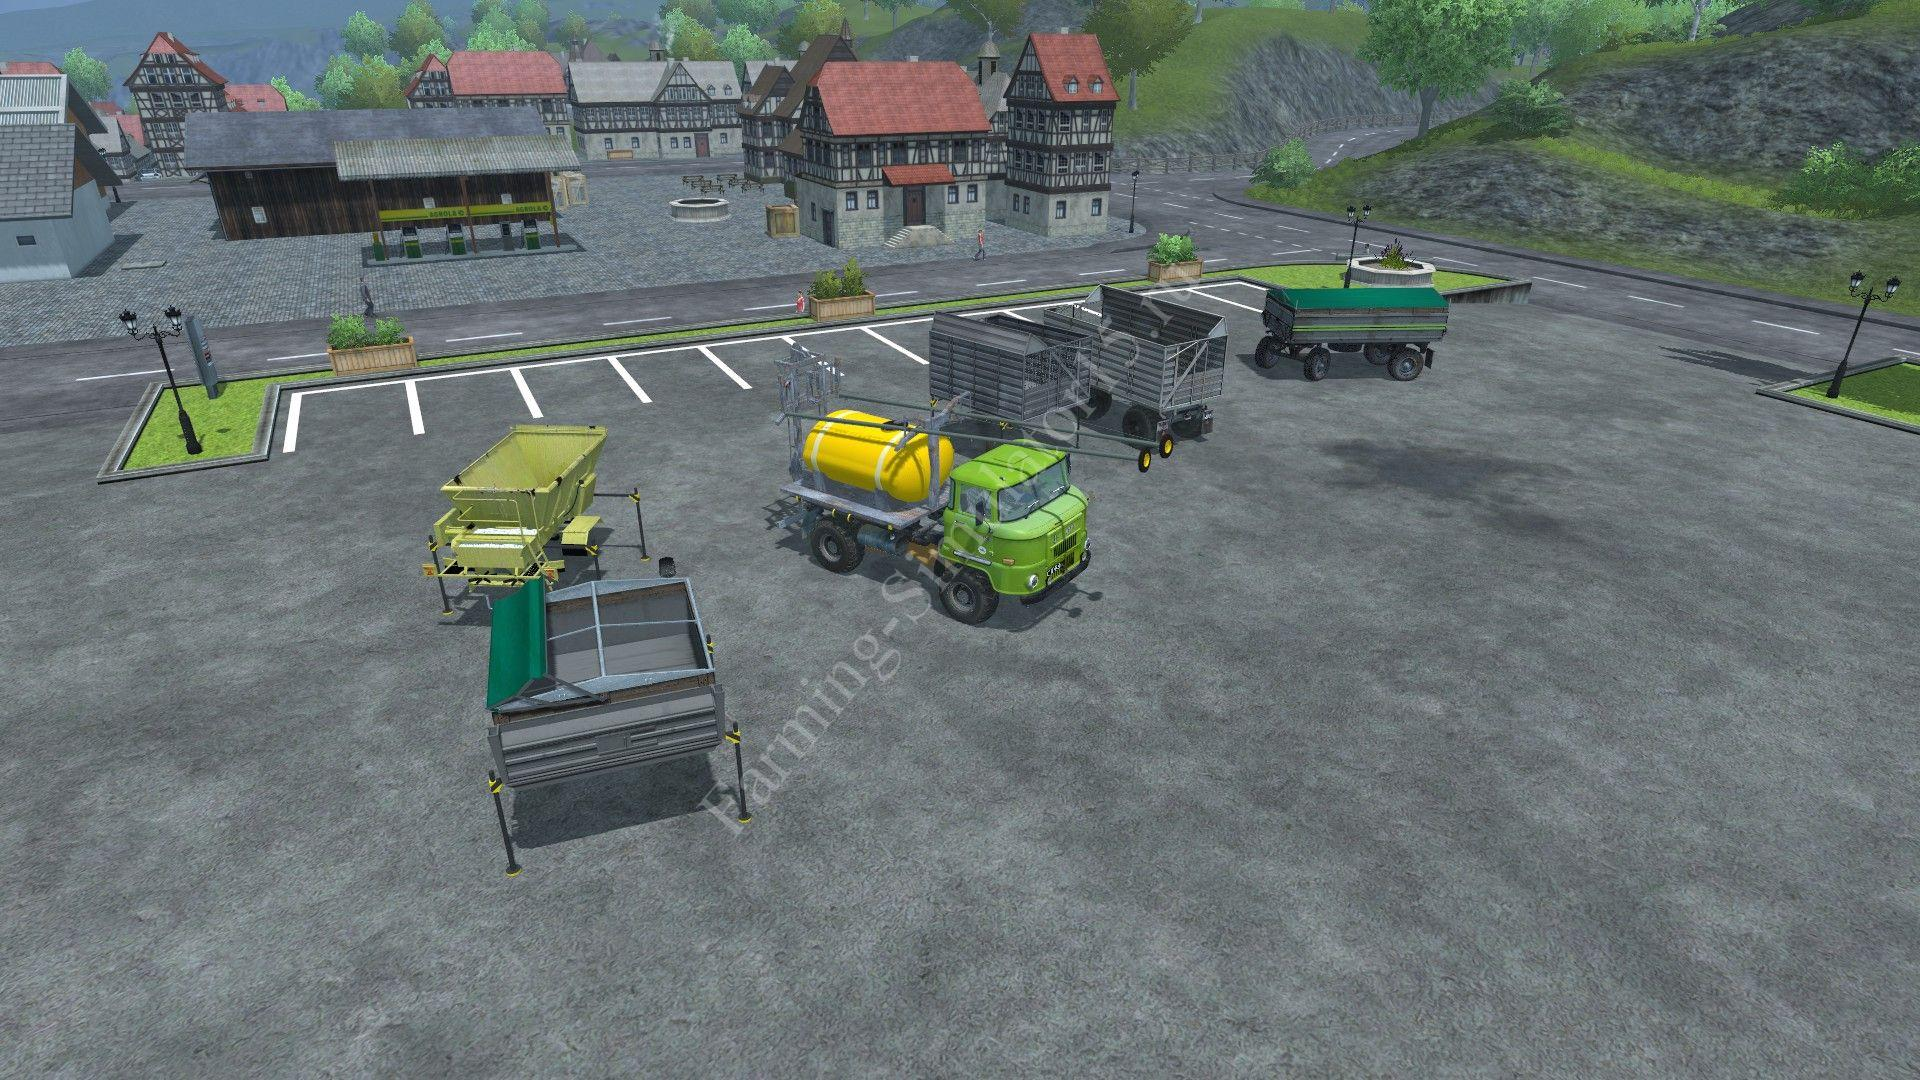 Мод грузовика IFA L60 swap bodies v 1.0 Farming Simulator 2013, Farming Simulator 13